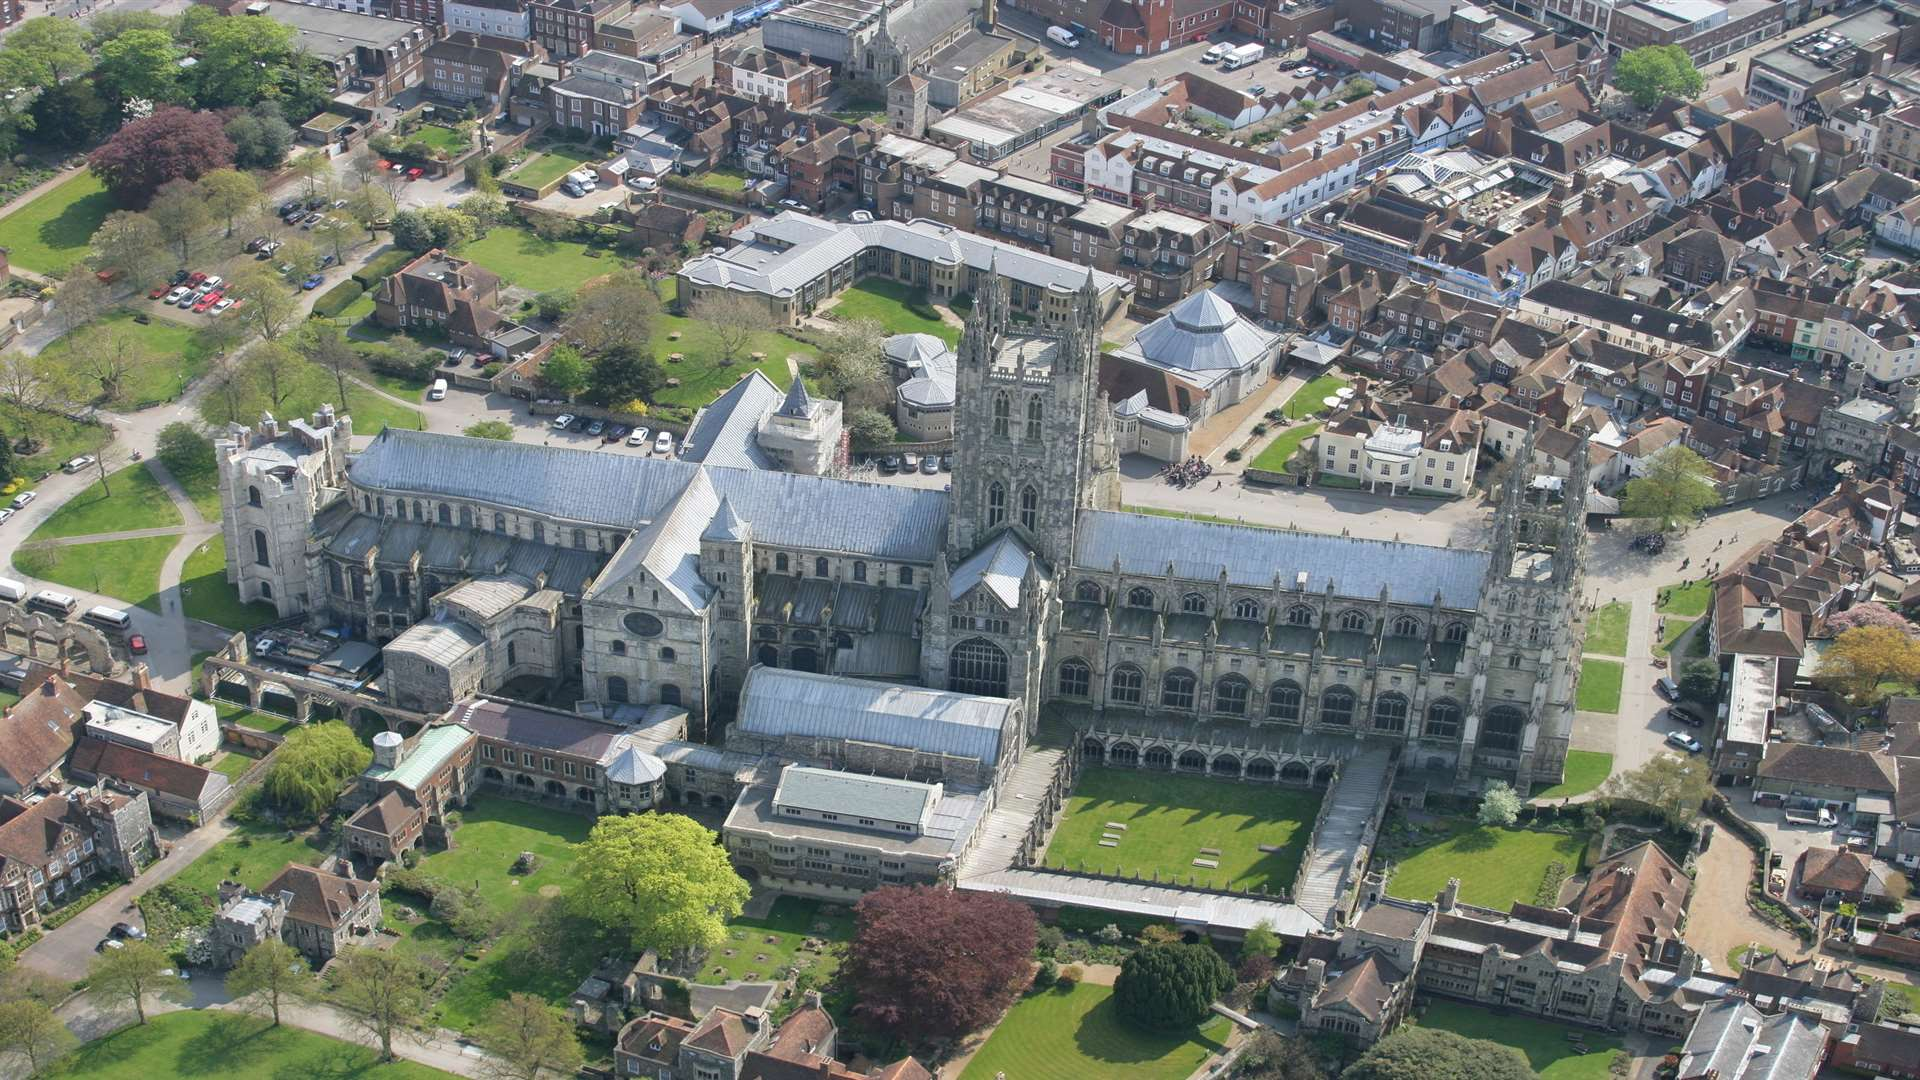 Canterbury is considering a bid to become the UK City of Culture 2025